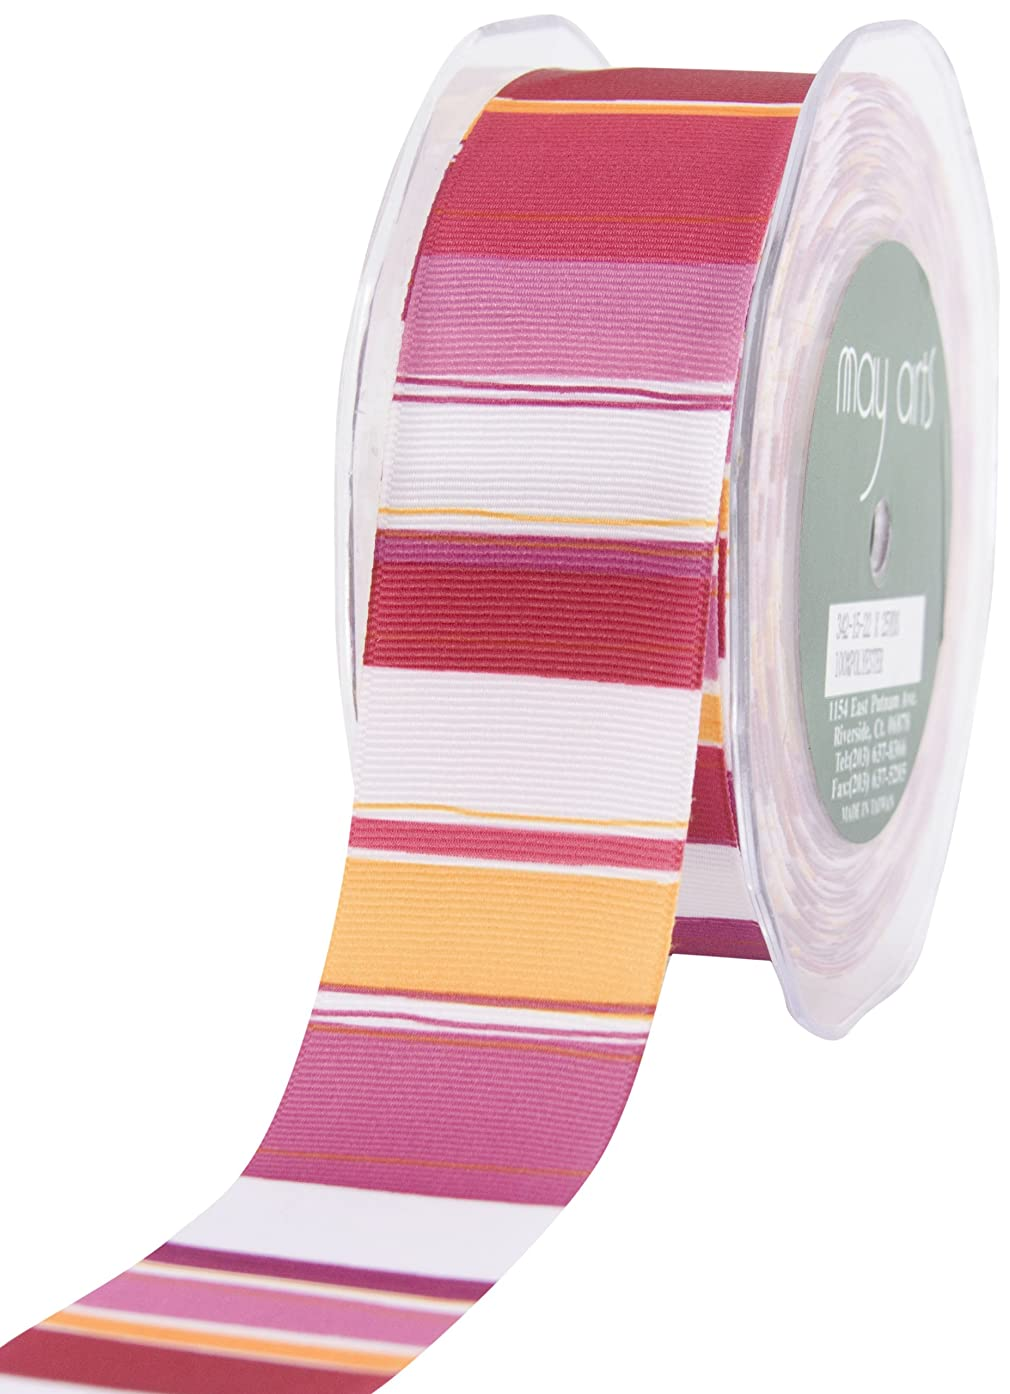 May Arts 1-1/2-Inch Wide Ribbon, Fuchsia and Orange Grosgrain Stripe